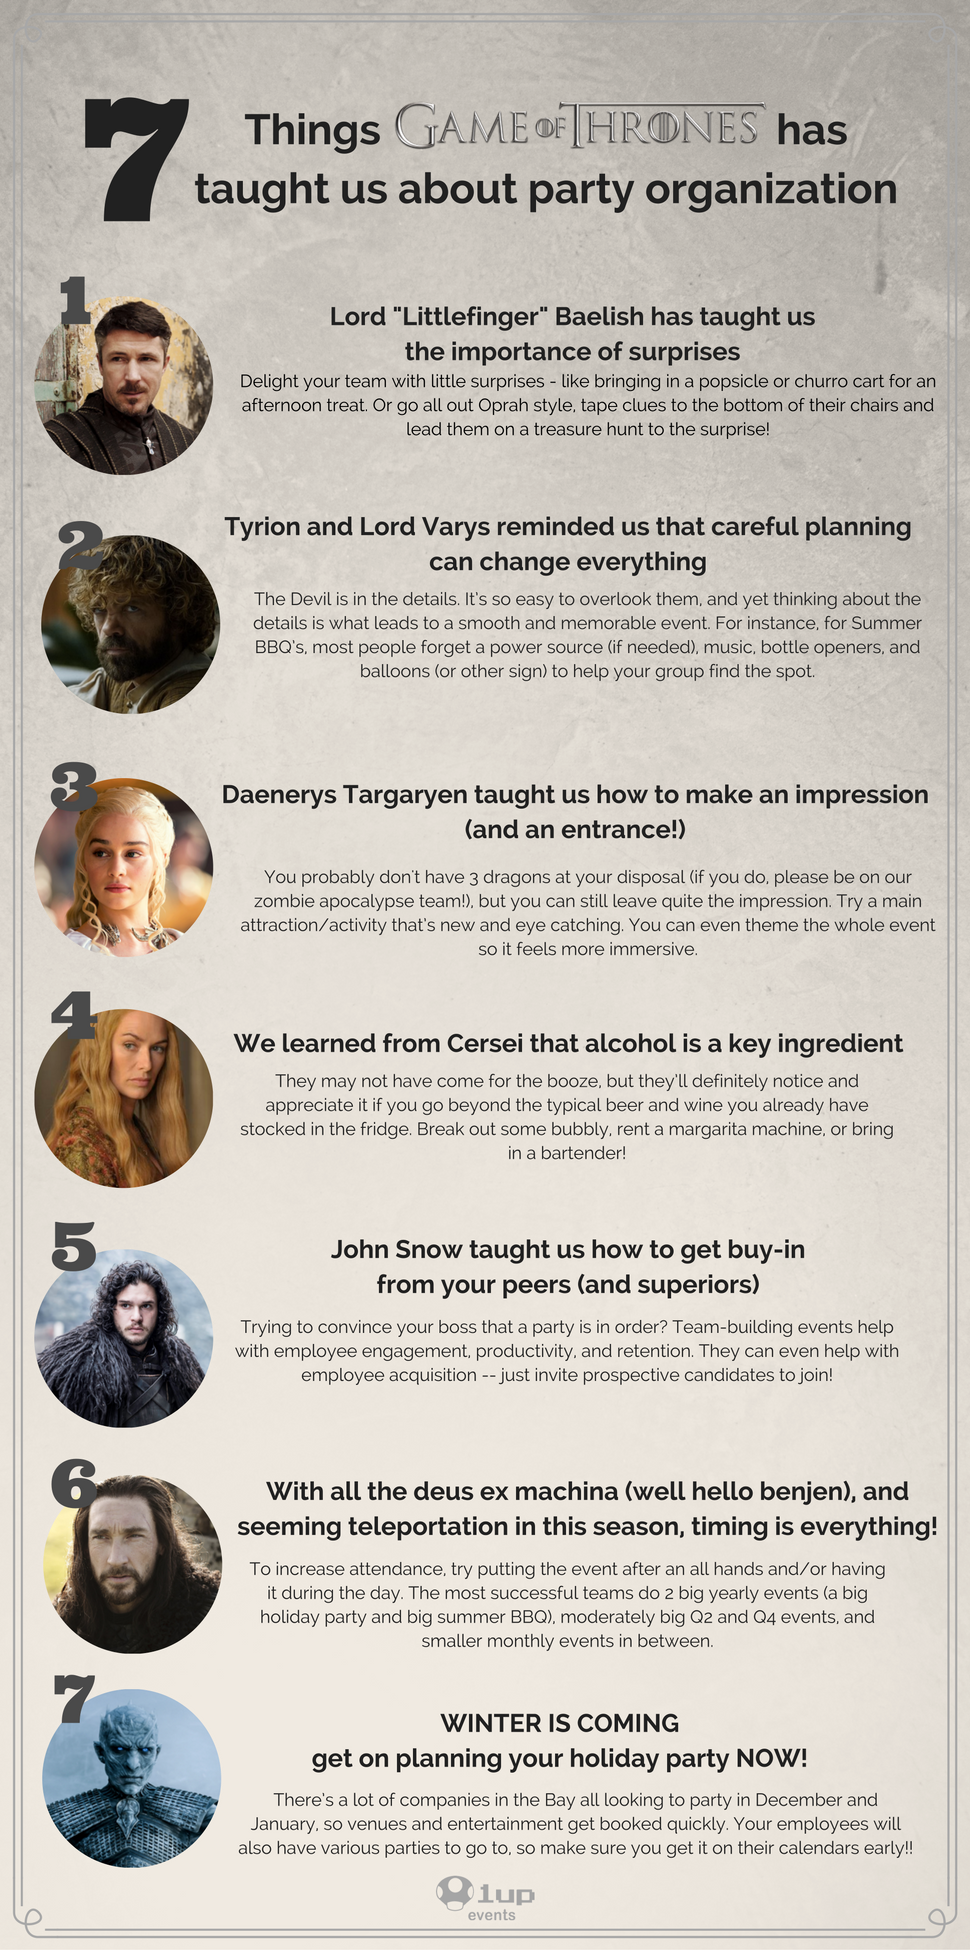 7 Things Game of Thrones has Taught us About Party Organization